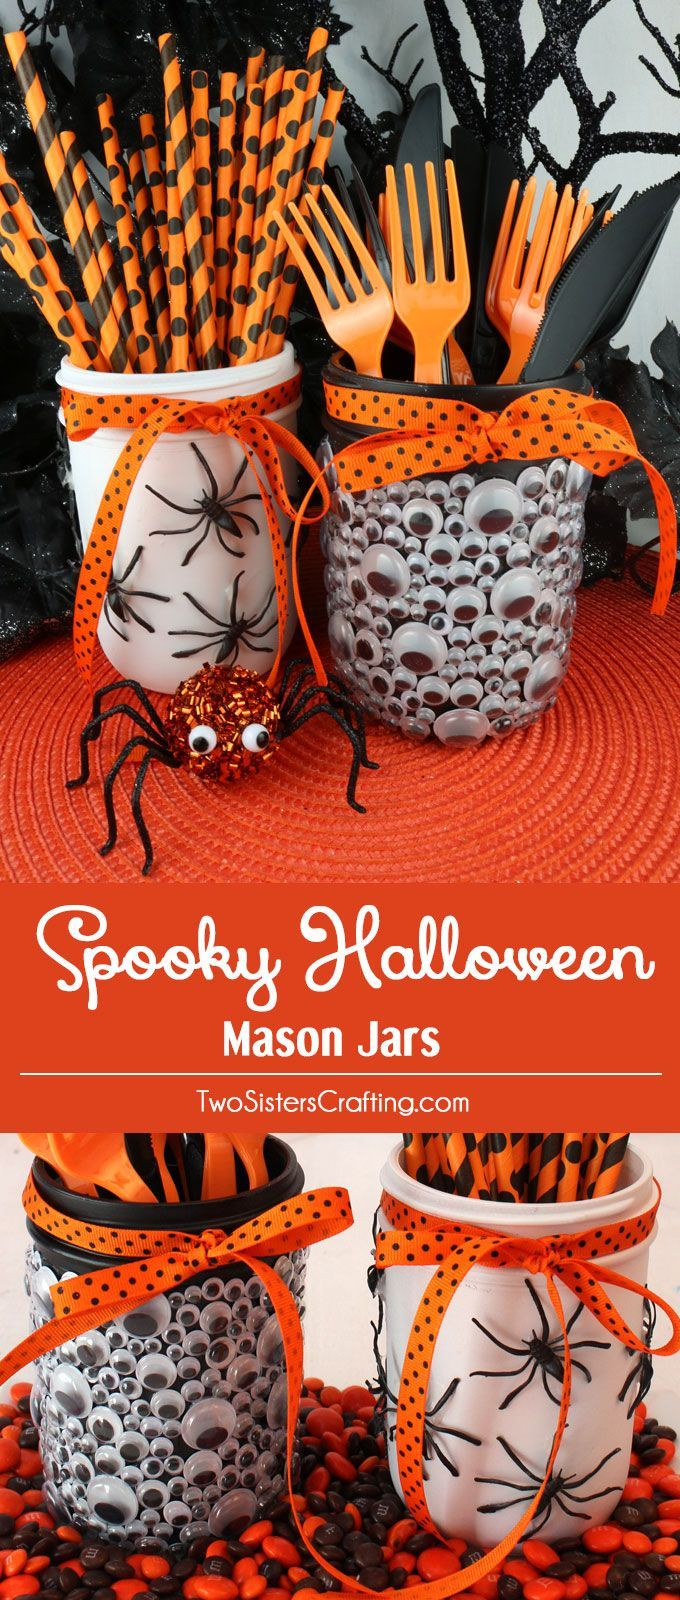 Spooky Halloween Mason Jars | Jars, Mason jars and Halloween party